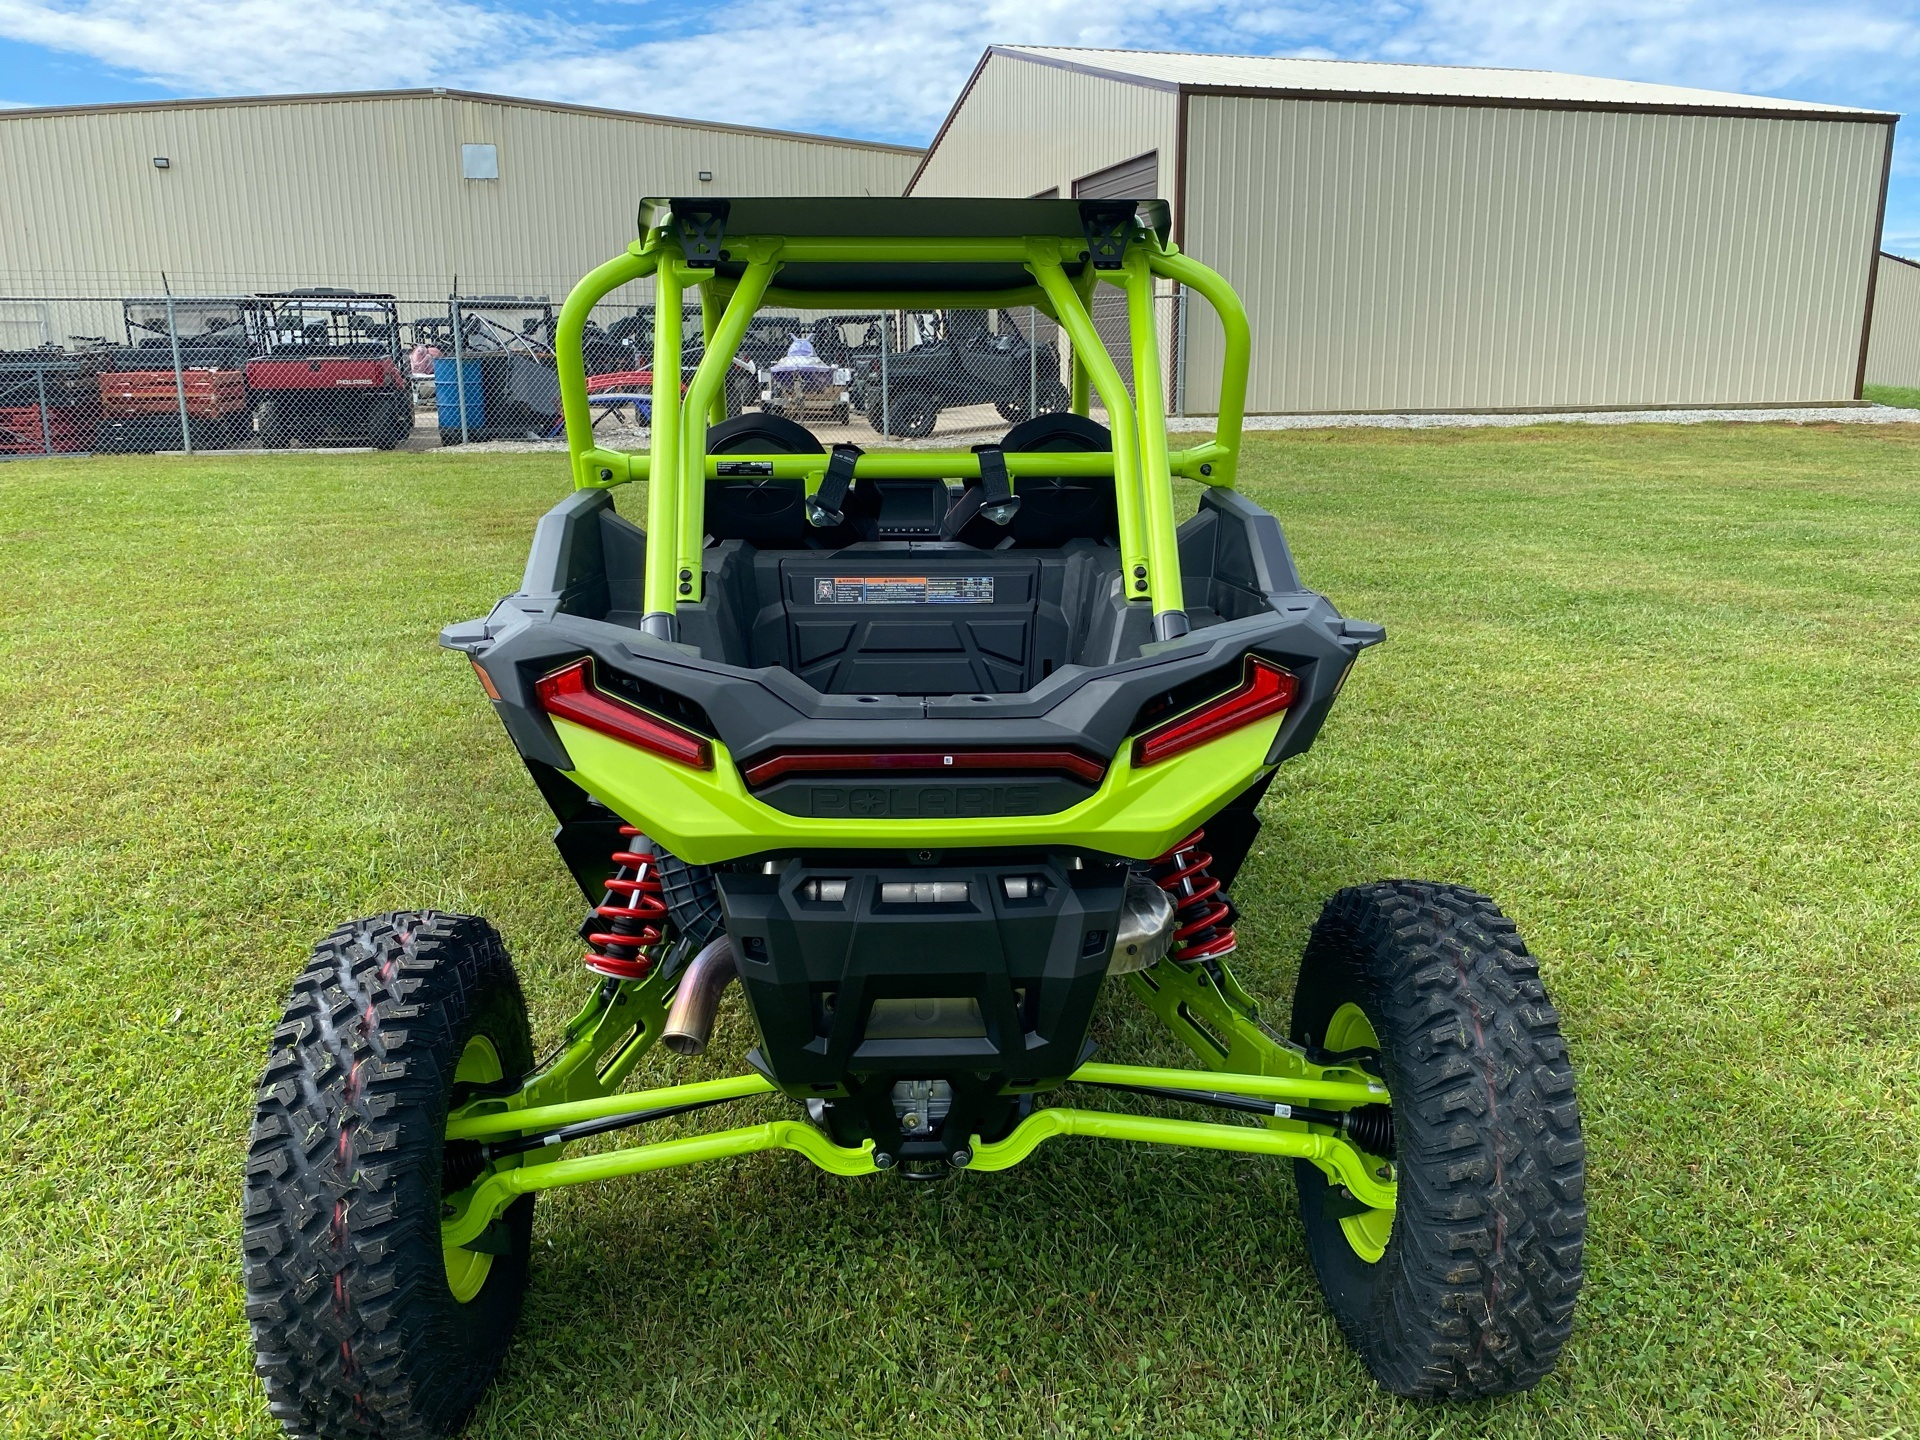 2021 Polaris RZR Turbo S Lifted Lime LE in Statesville, North Carolina - Photo 4